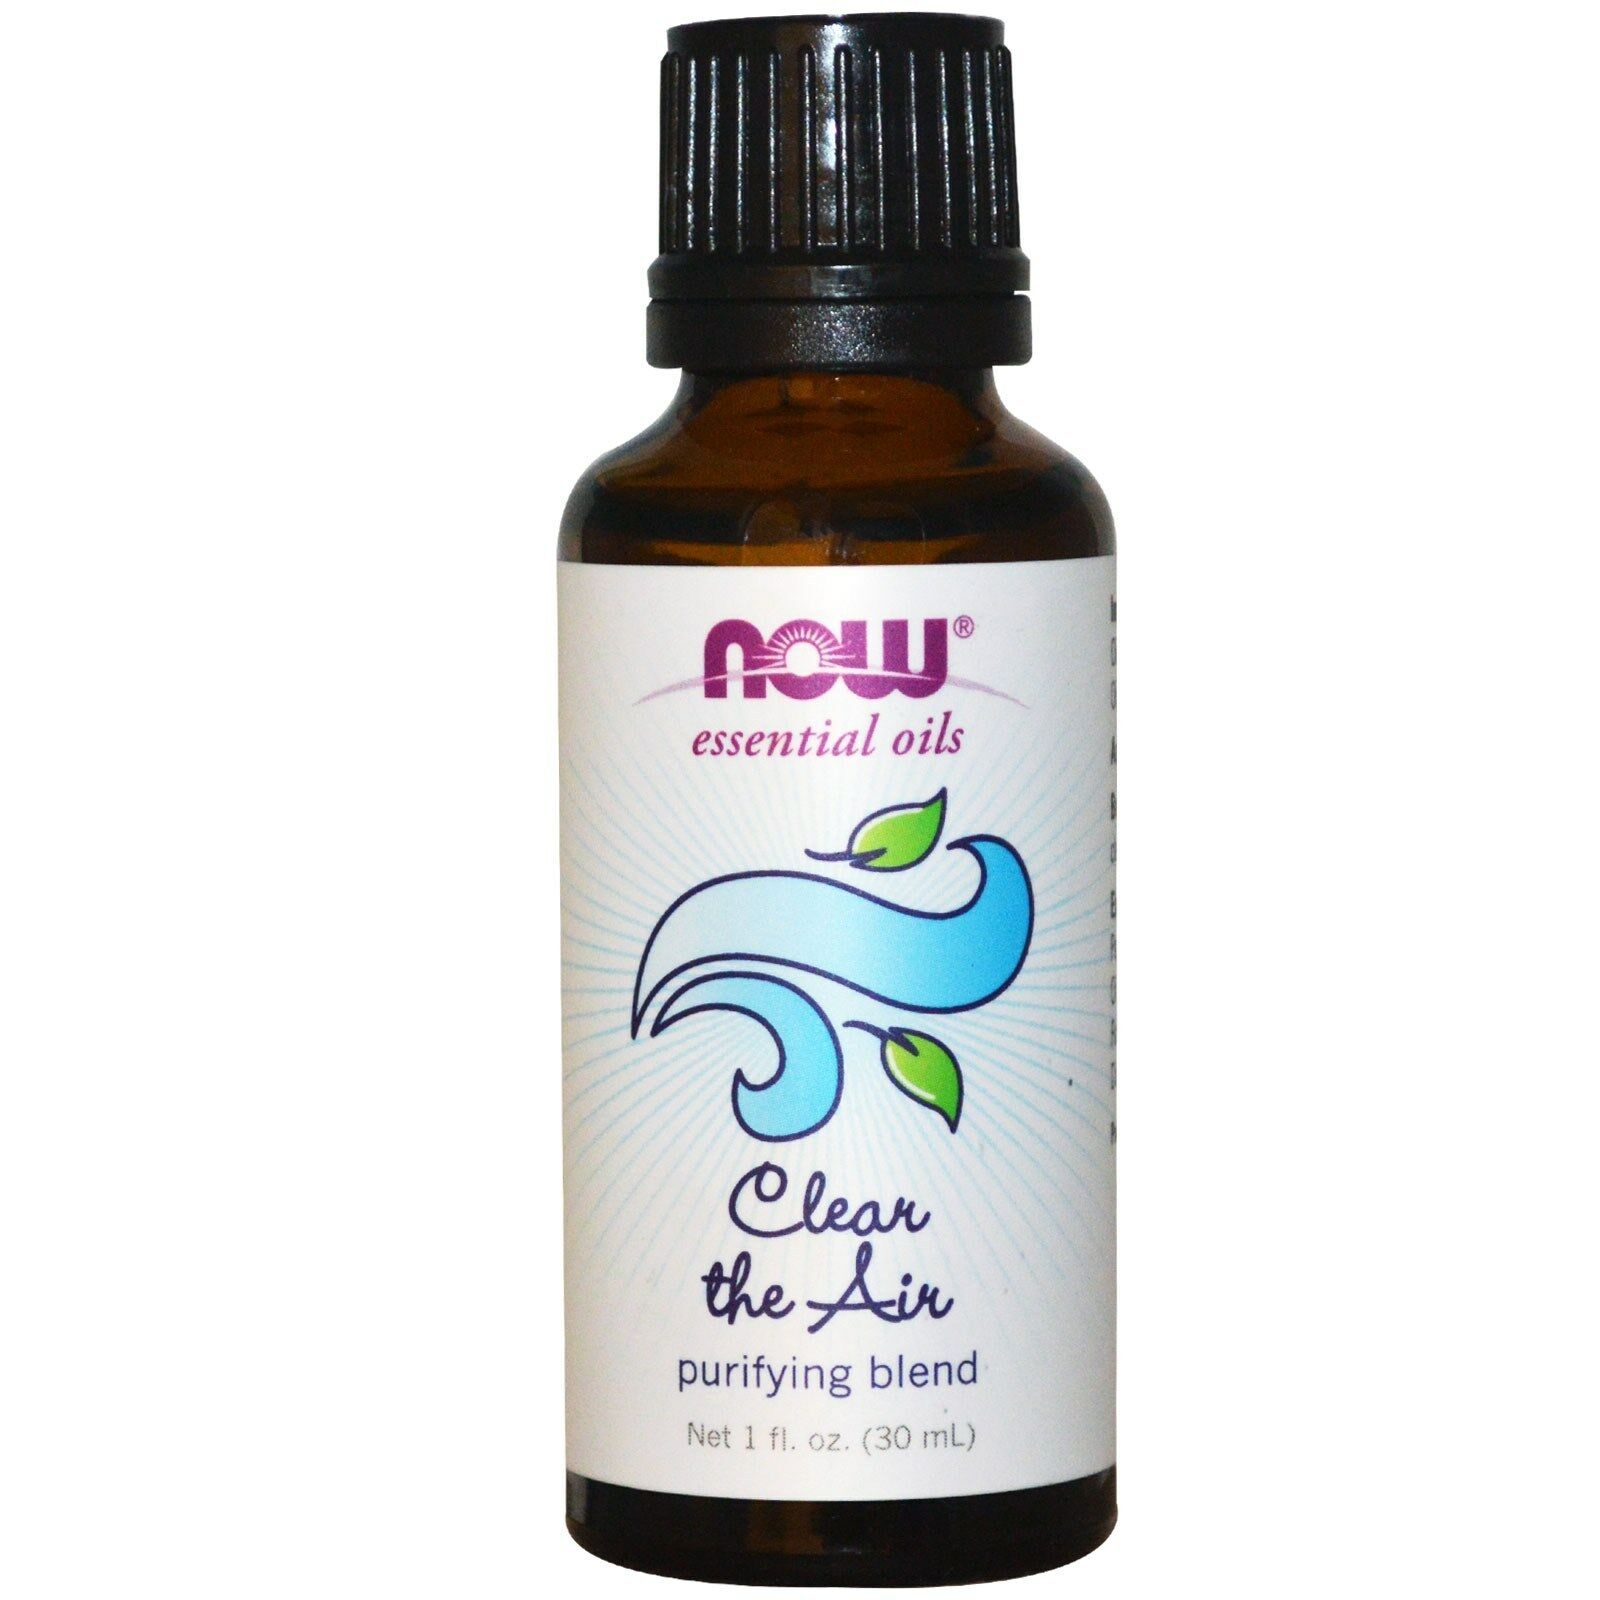 NOW Foods 1 oz Essential Oils and Blend Oils - FREE SHIPPING! Clear the Air Blend